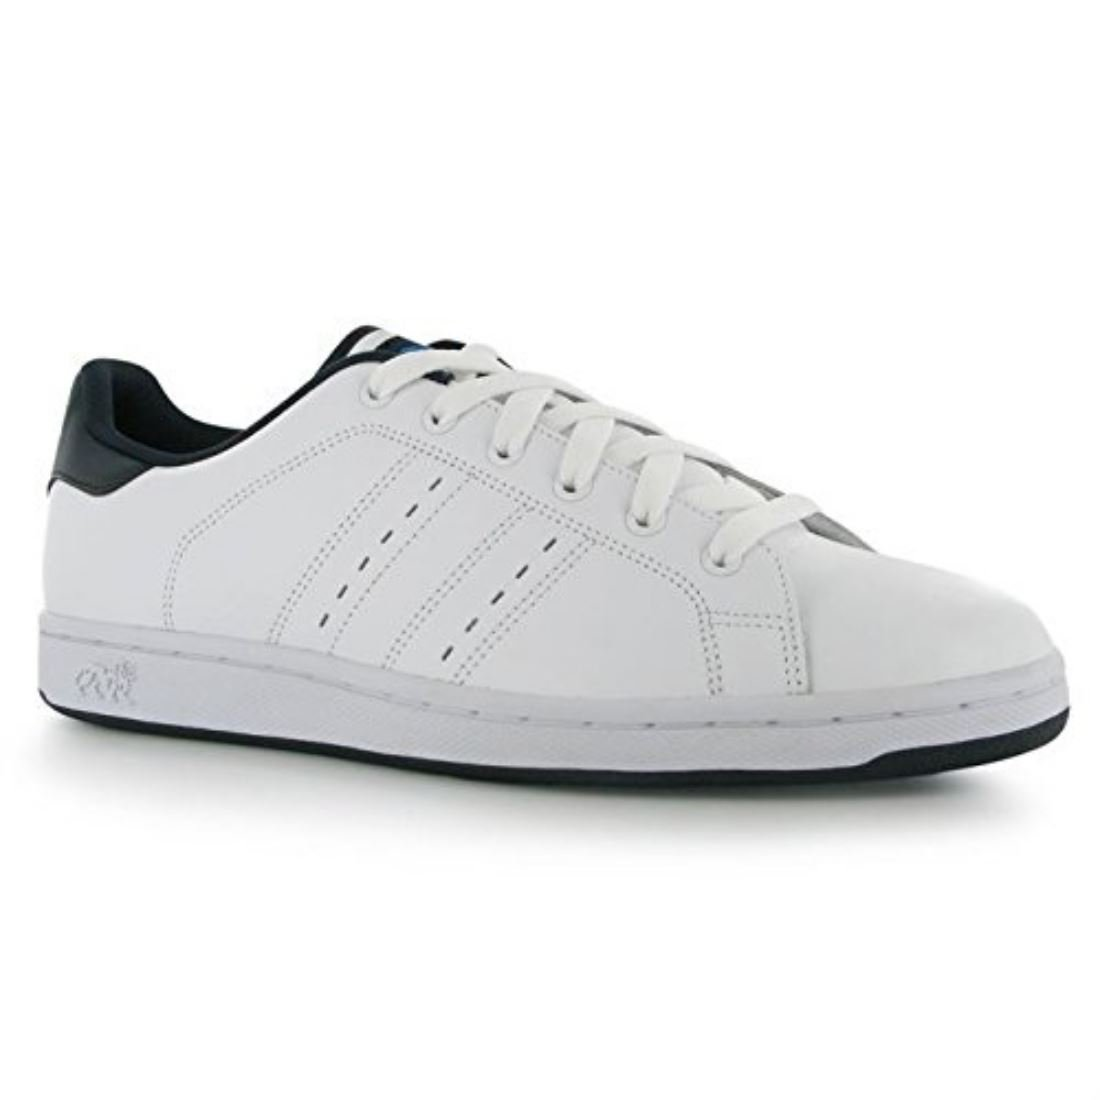 Shoes Online - Lonsdale Mens Sneakers Sneakers Trainers Shoes Leisure Sport New Leyton